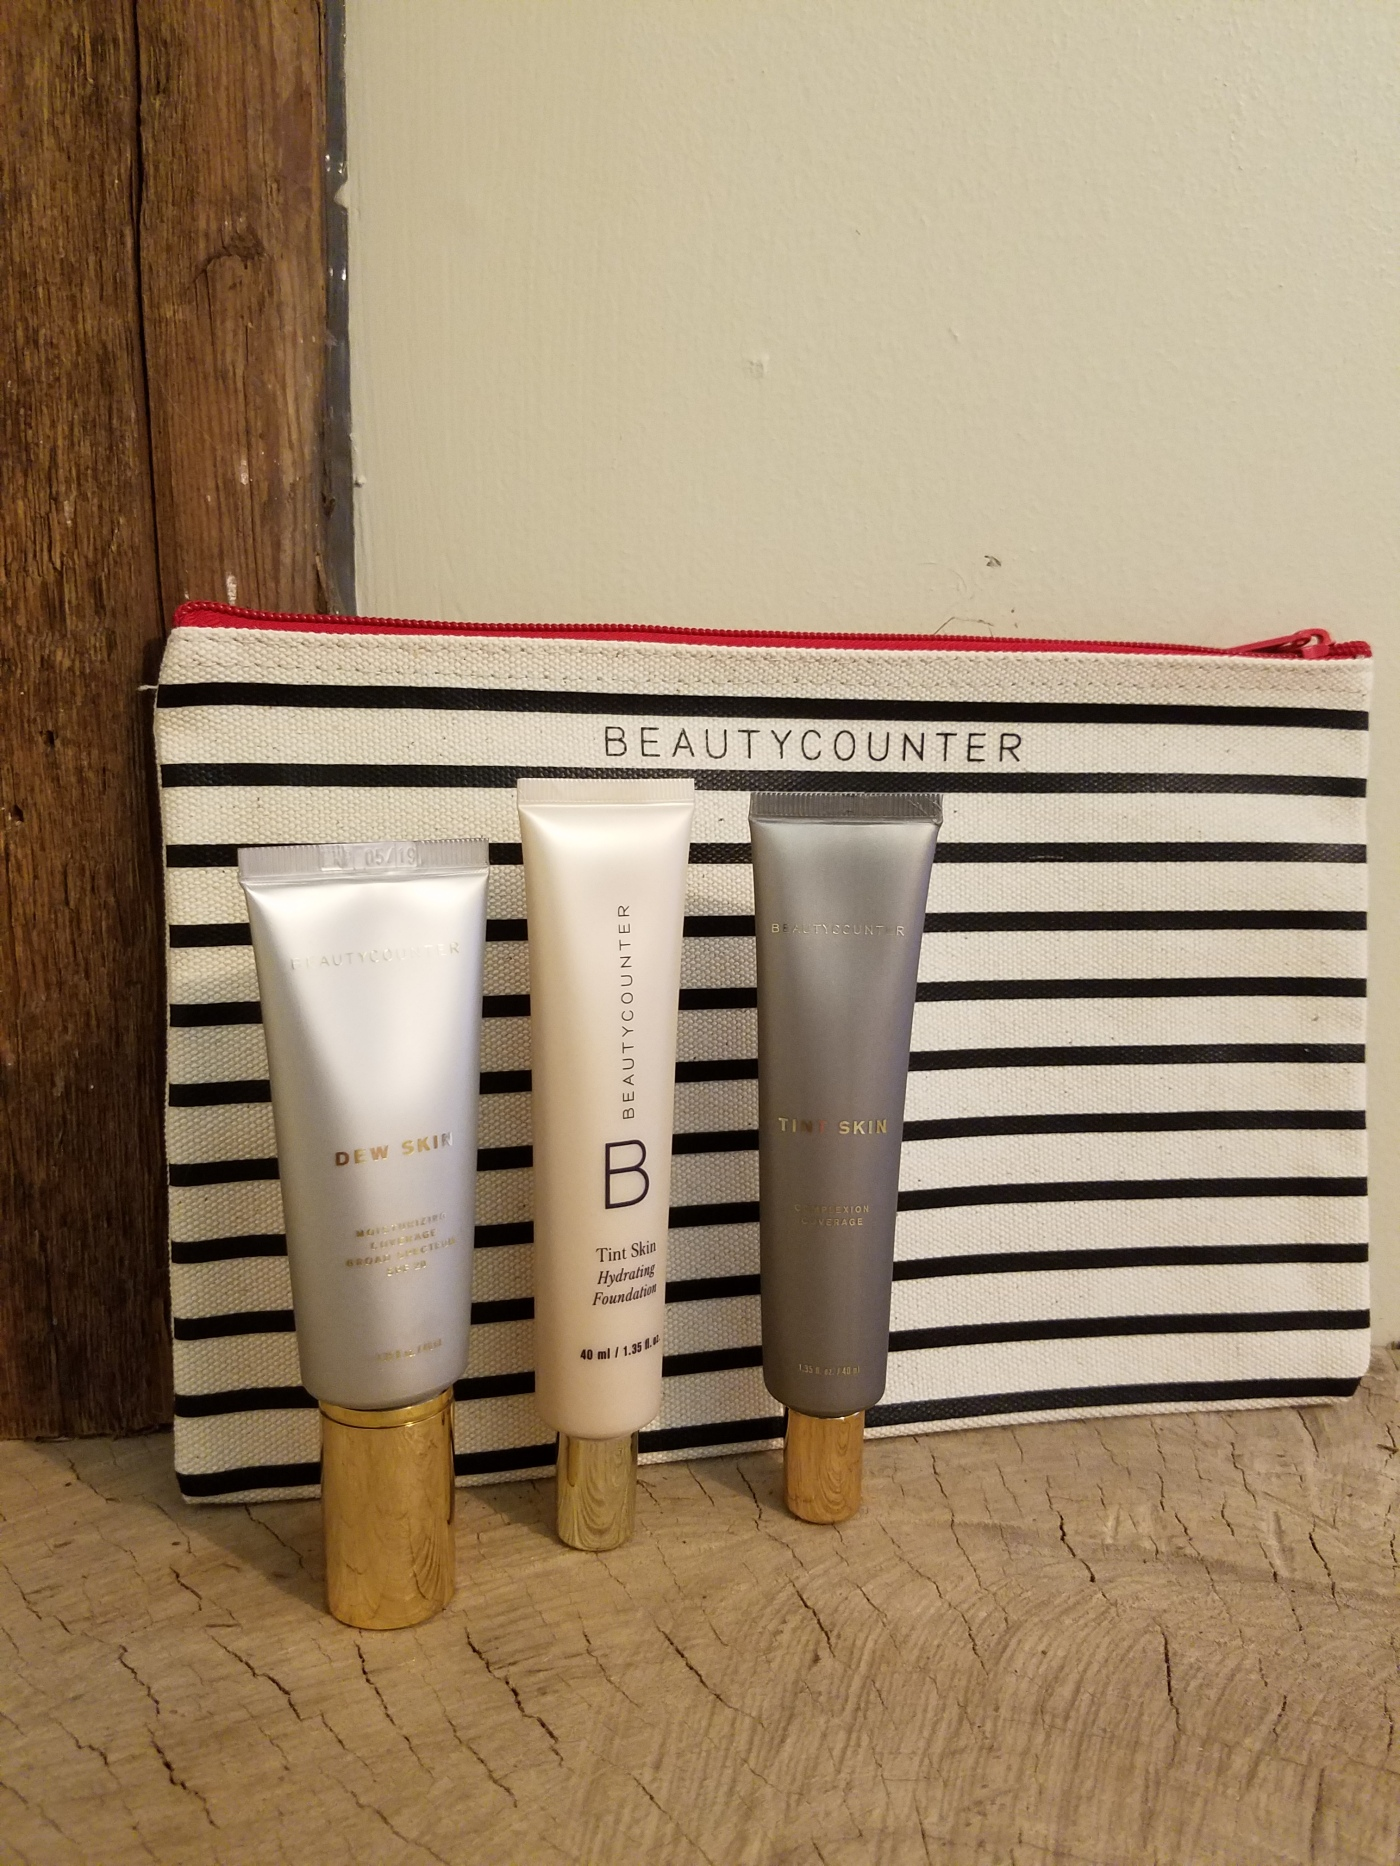 Better Beauty Vermont Beautycounter tint skin and dew skin